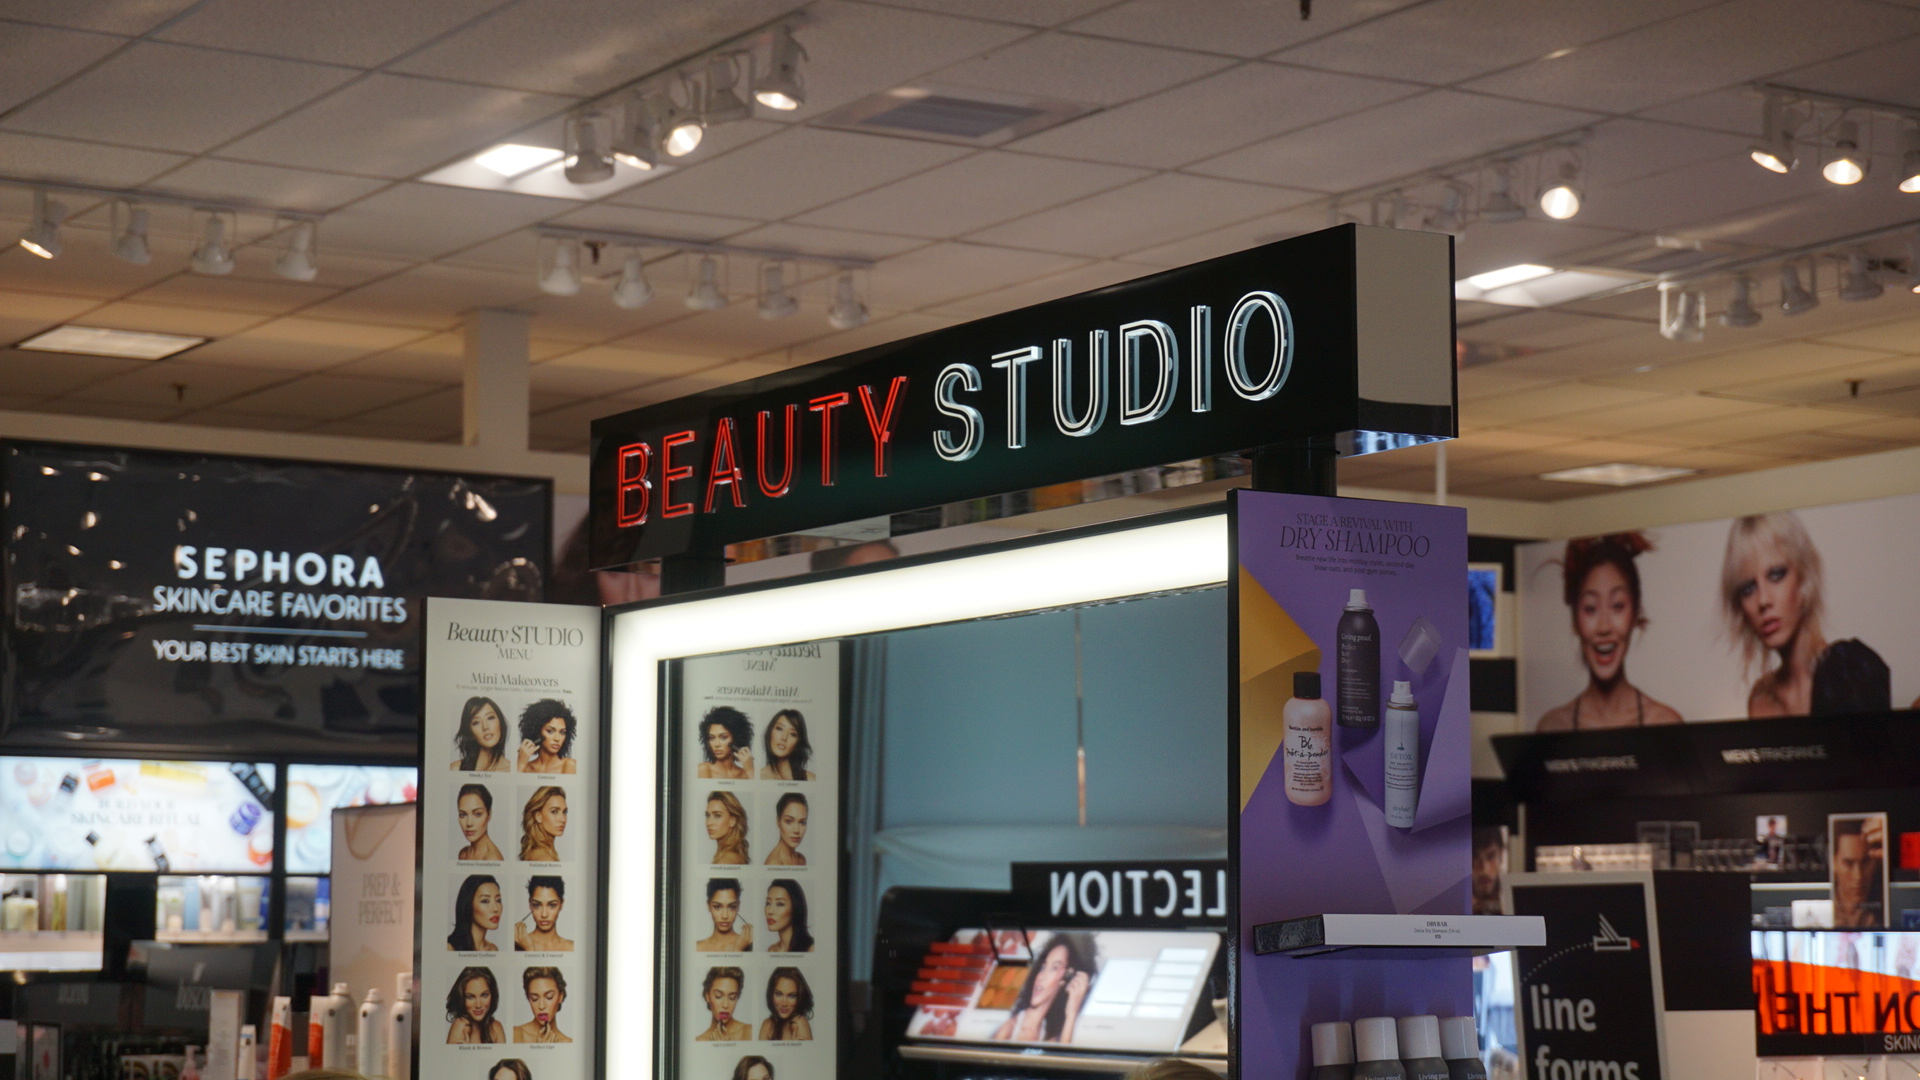 Sephora's Beauty Studio (LIVE!/Photo: Maura Ballard)